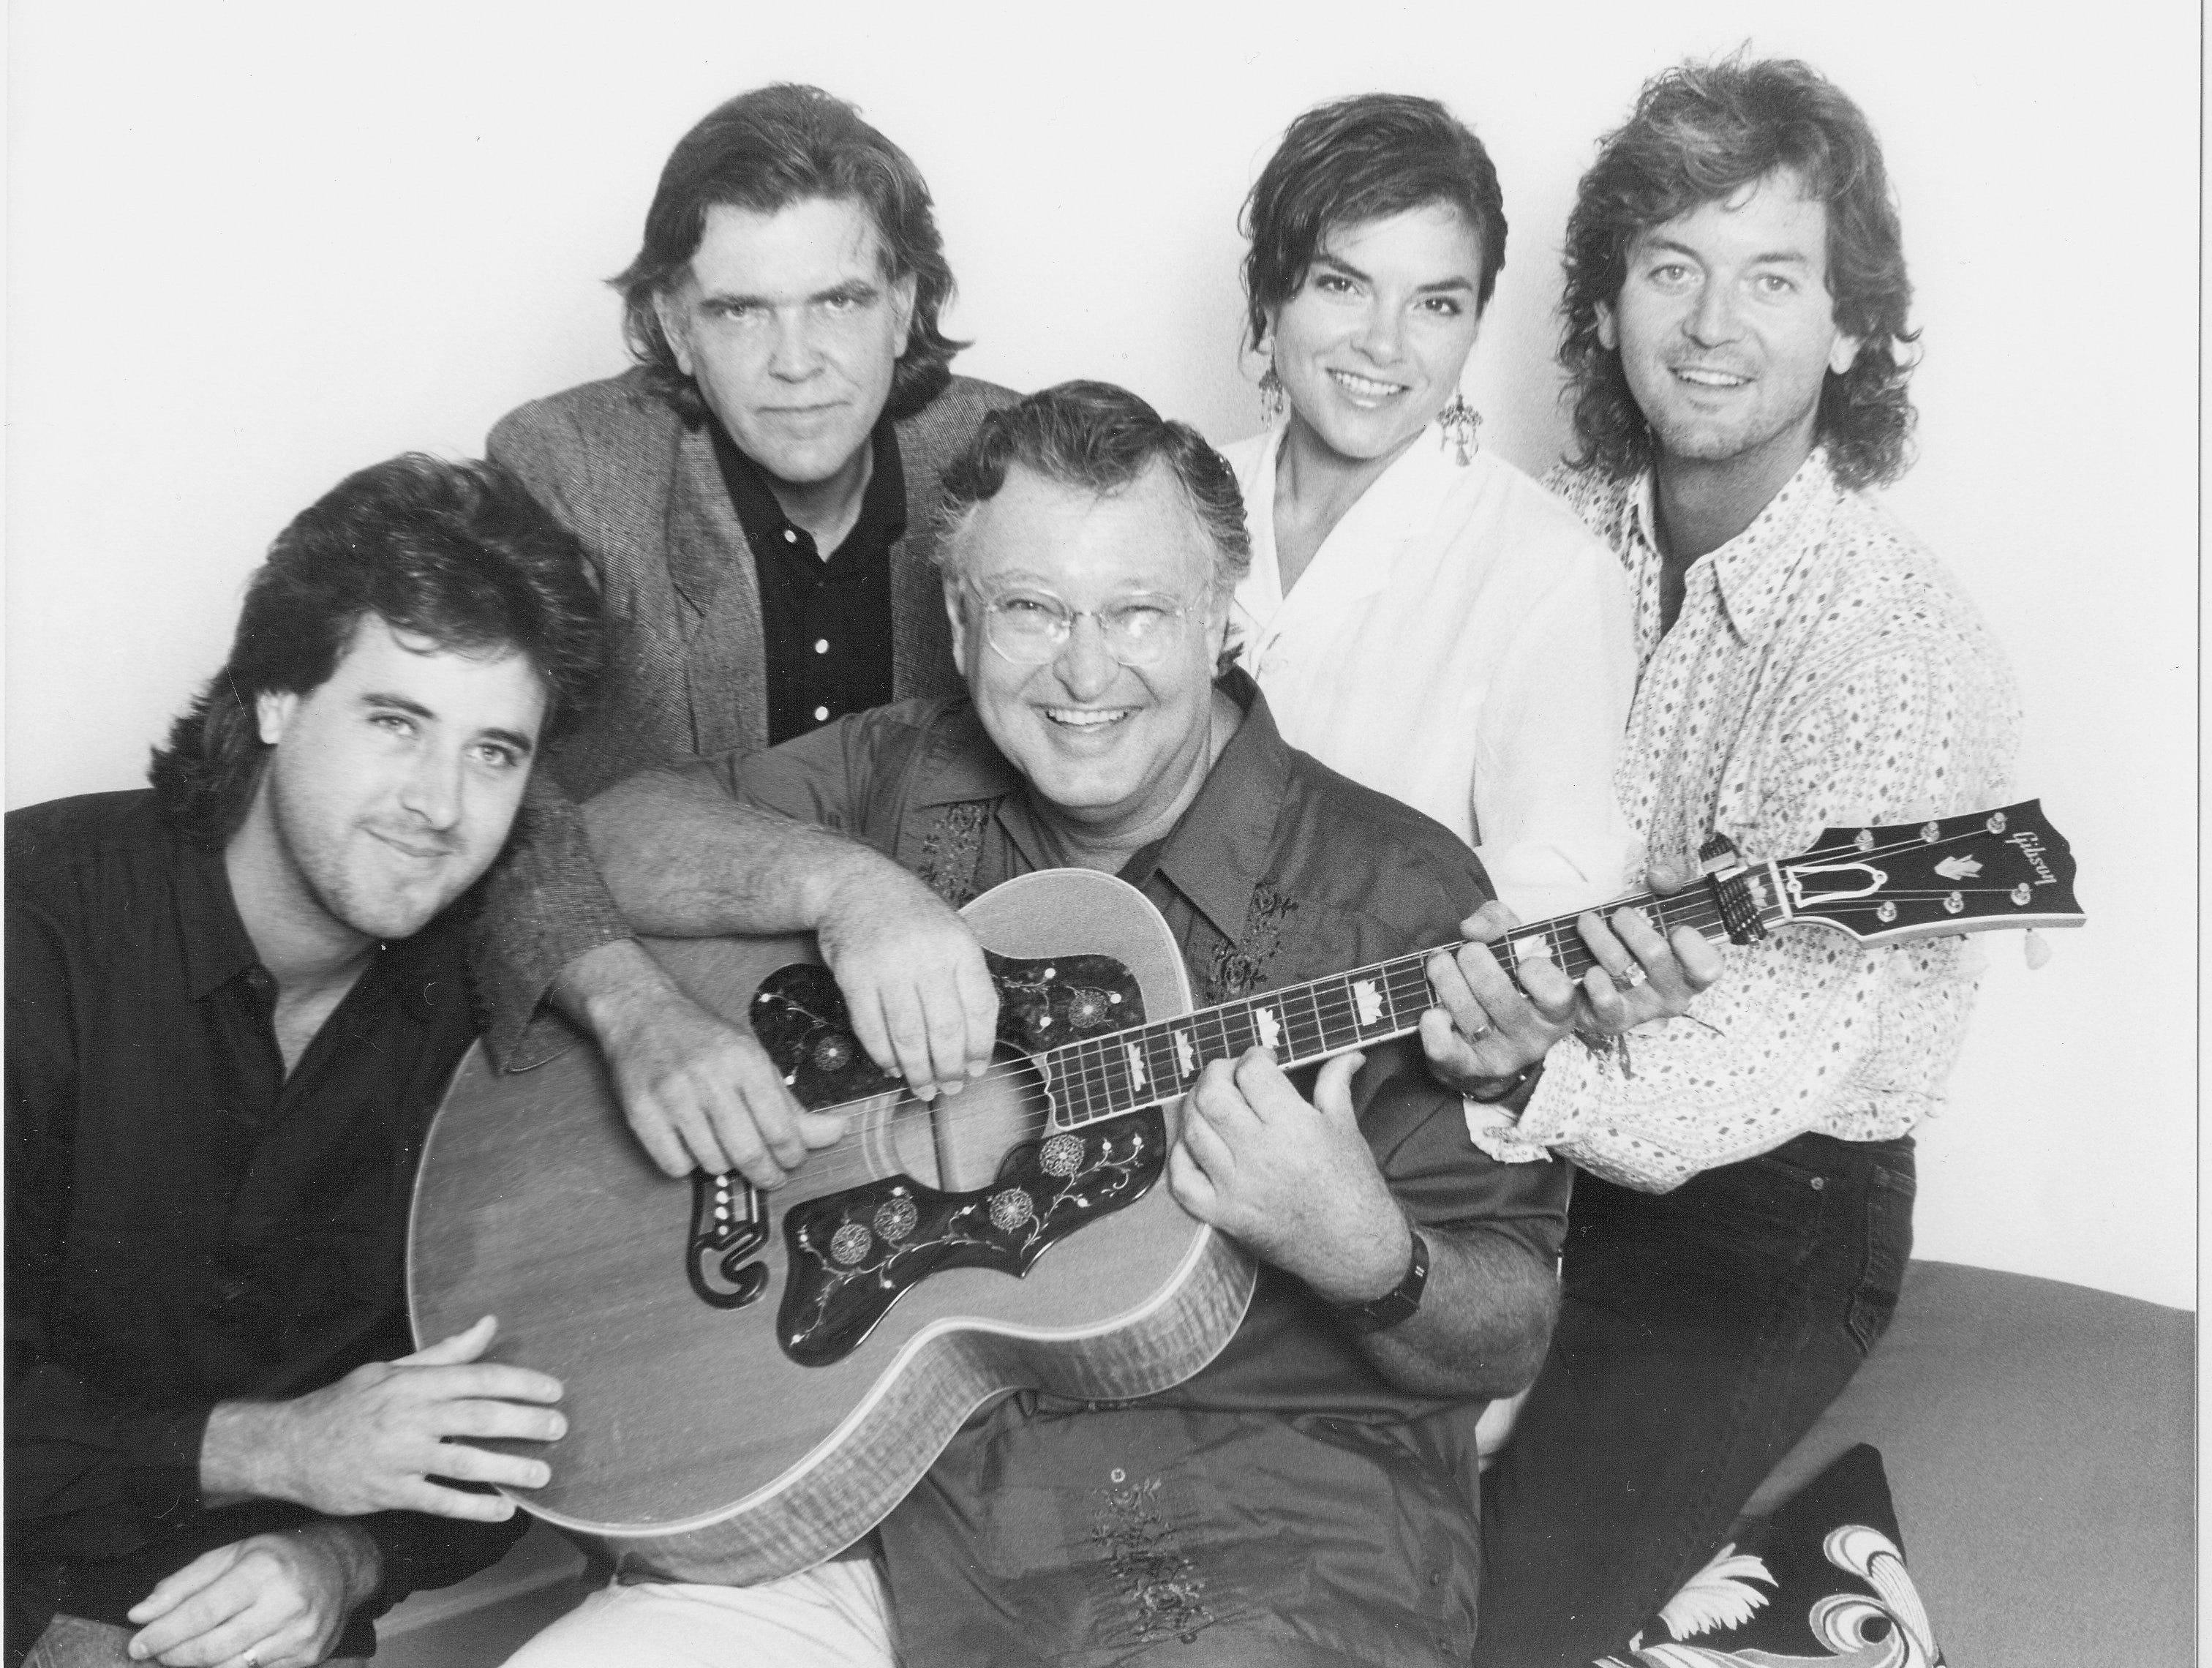 Vince Gill (from left), Guy Clark, John D. Loudermilk, Rosanne Cash and Rodney Crowell pose for a photo on July 6, 1987.